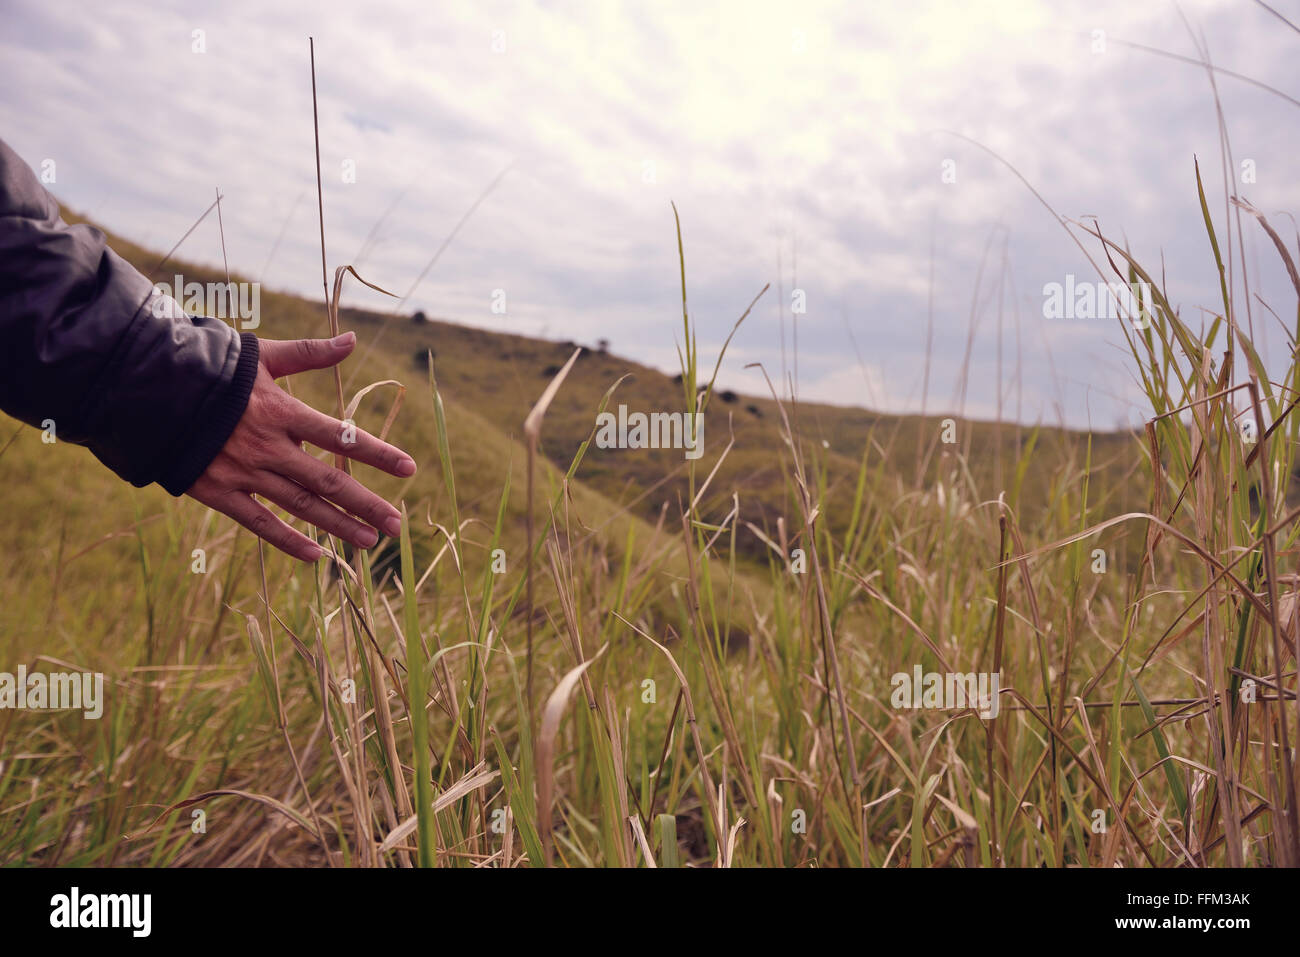 Open our hands to touch the wind grass - Stock Image